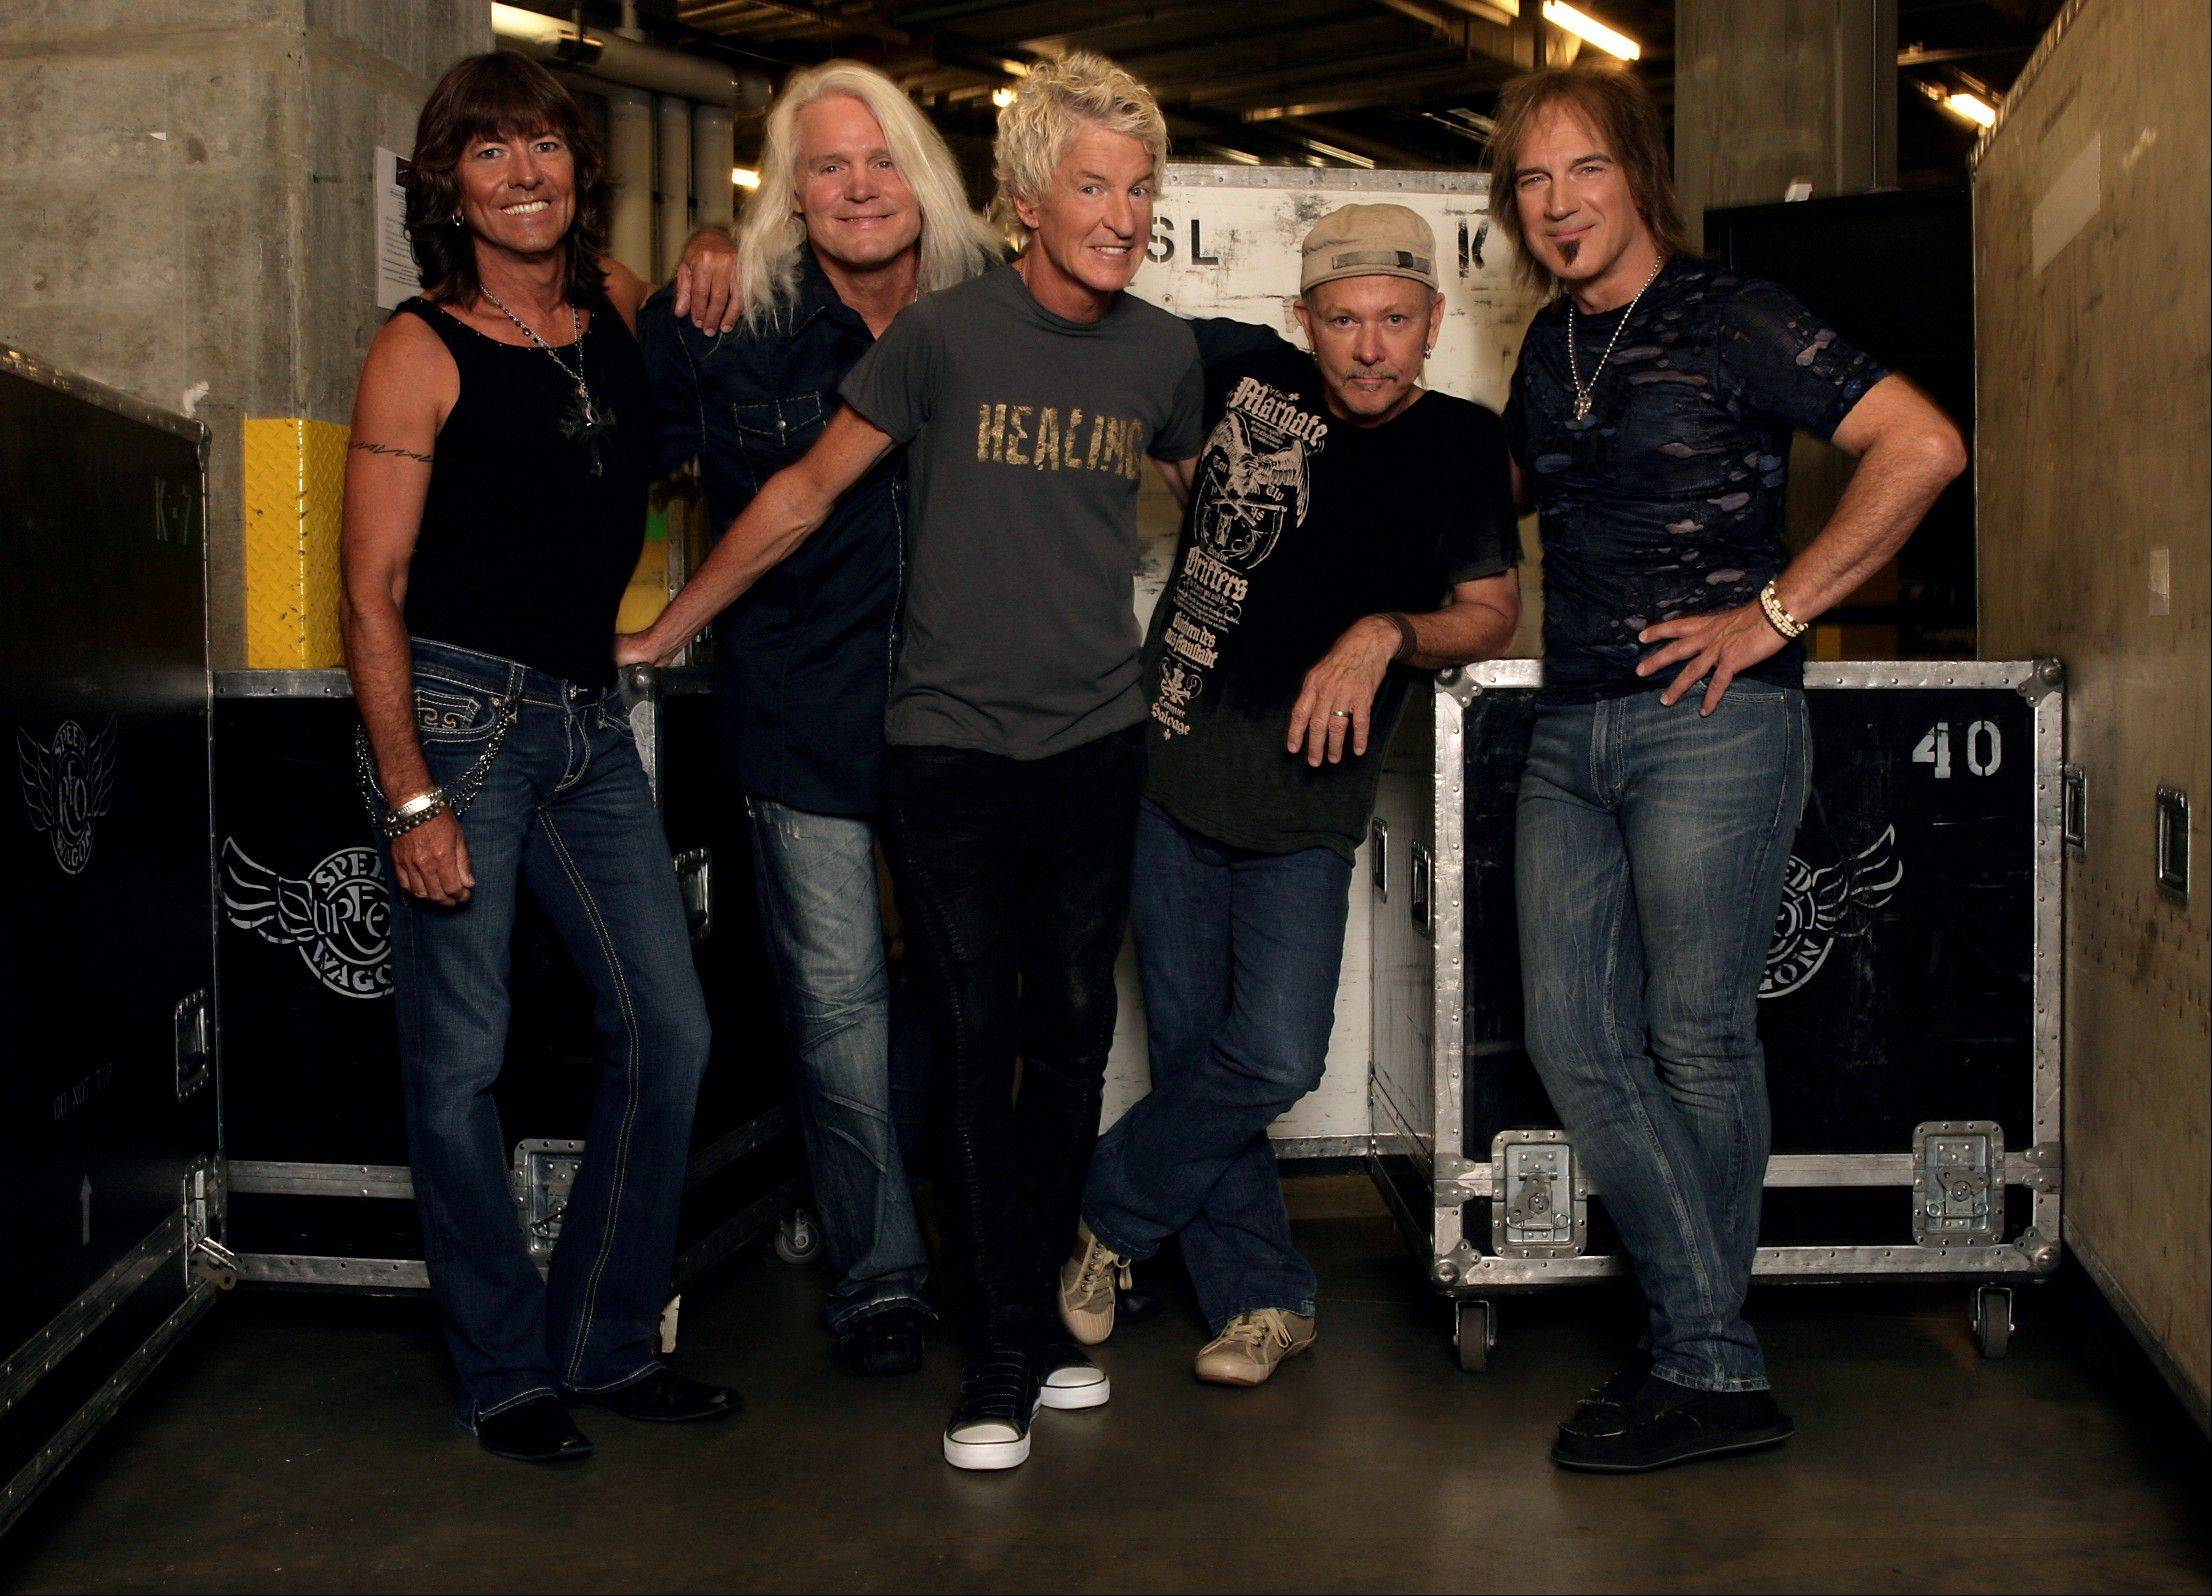 REO Speedwagon will play the Illinois State Fair on Aug. 10.